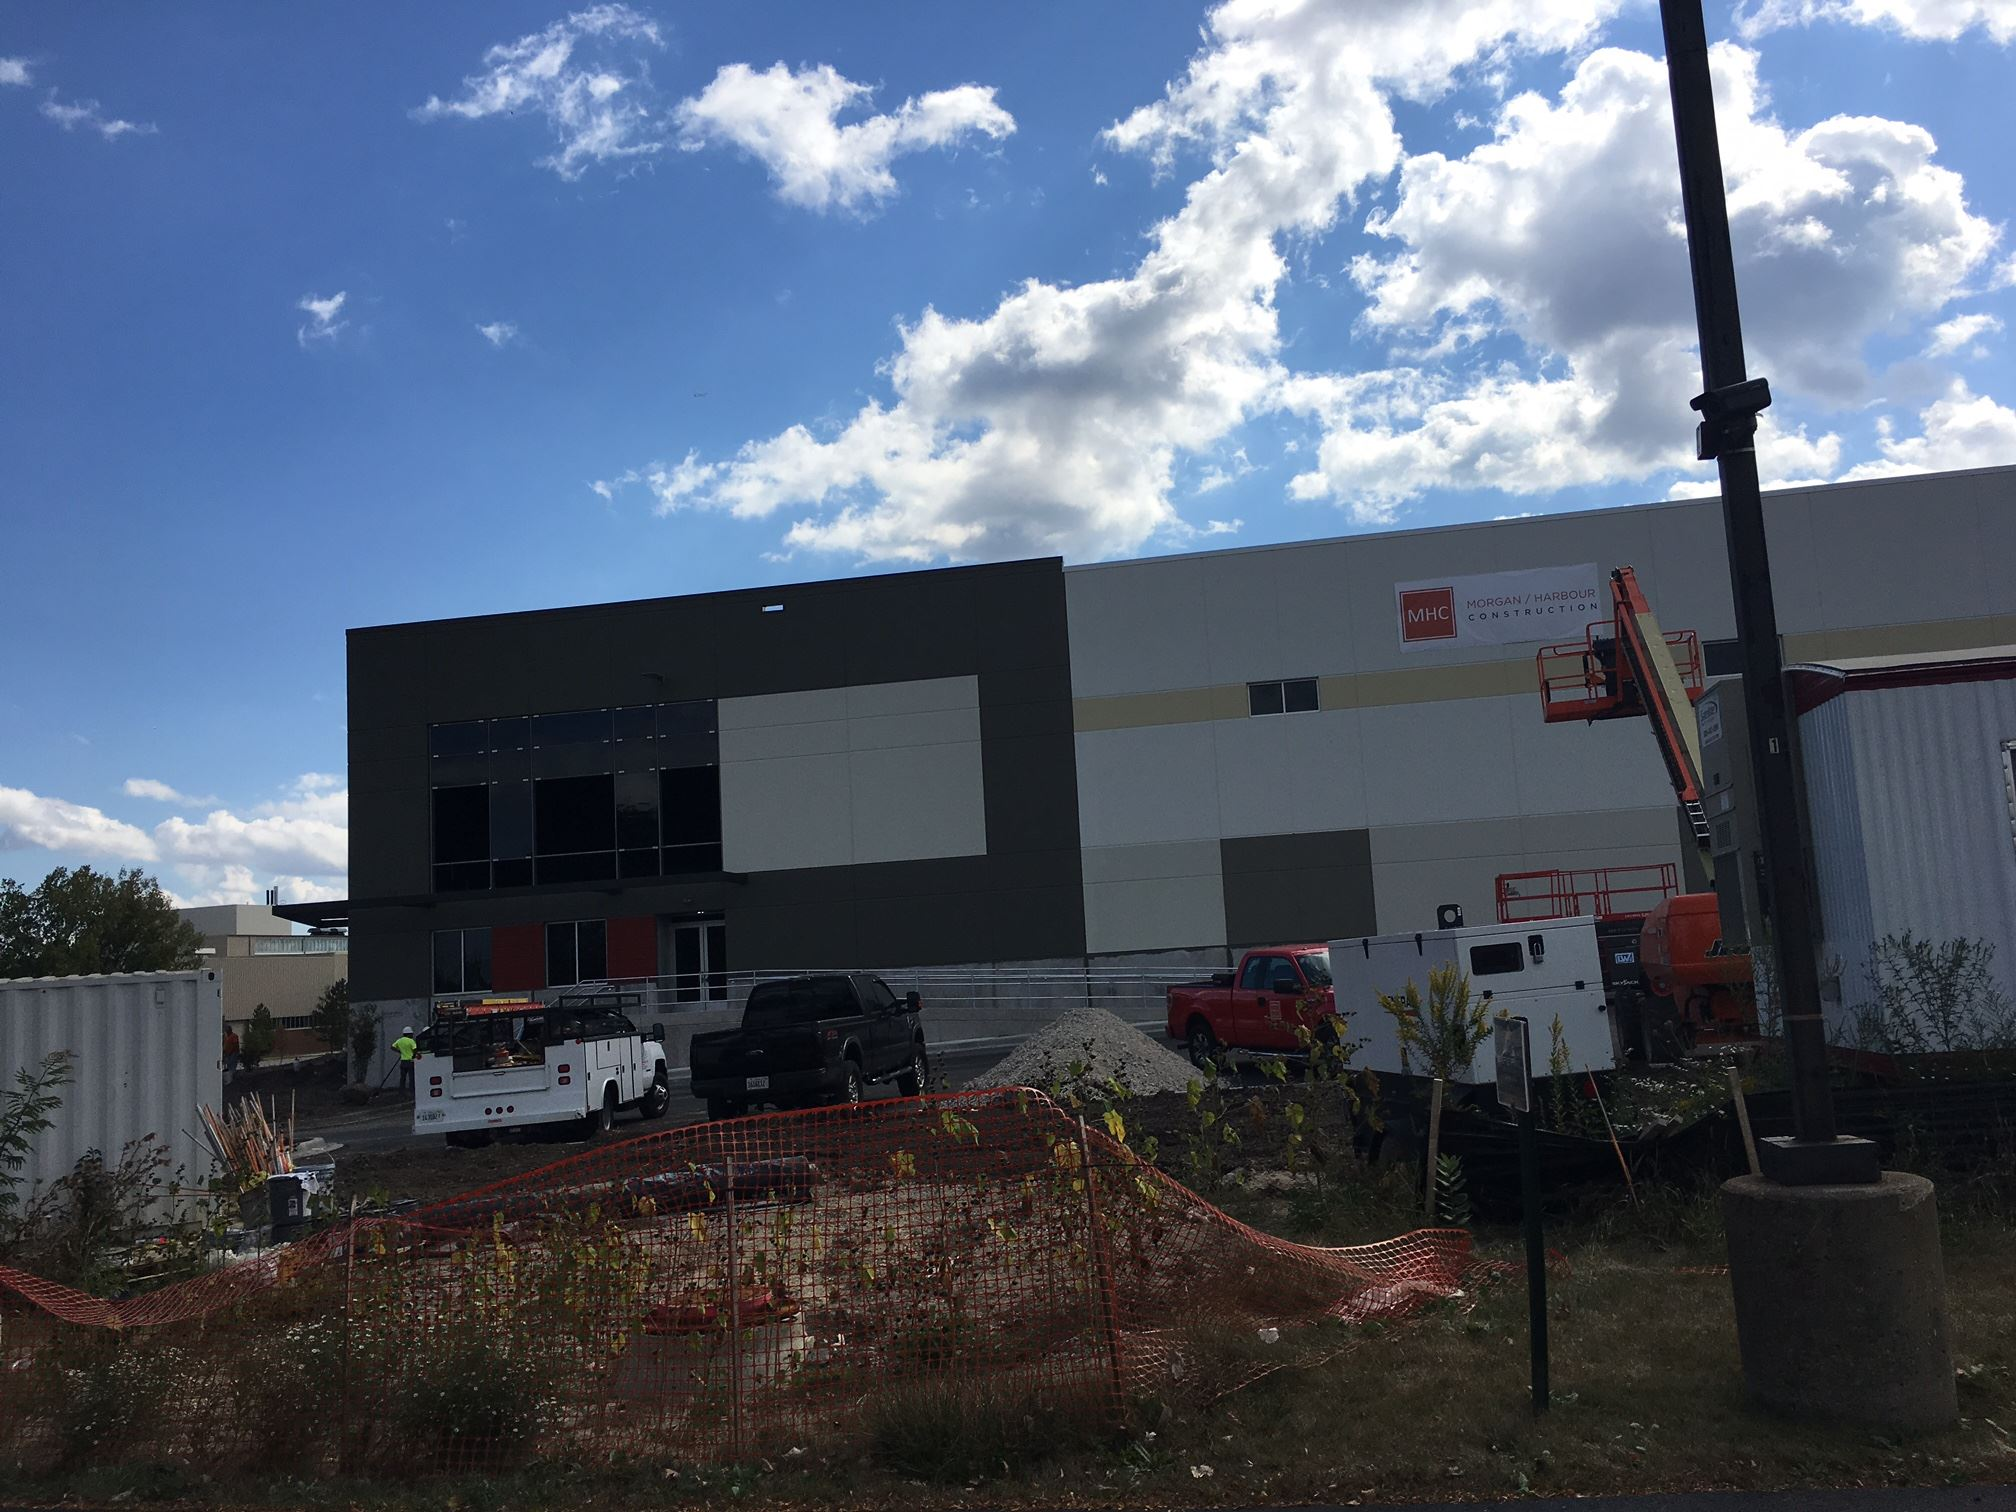 720 Northgate Parkway Construction Photo 2 on 9-29-17